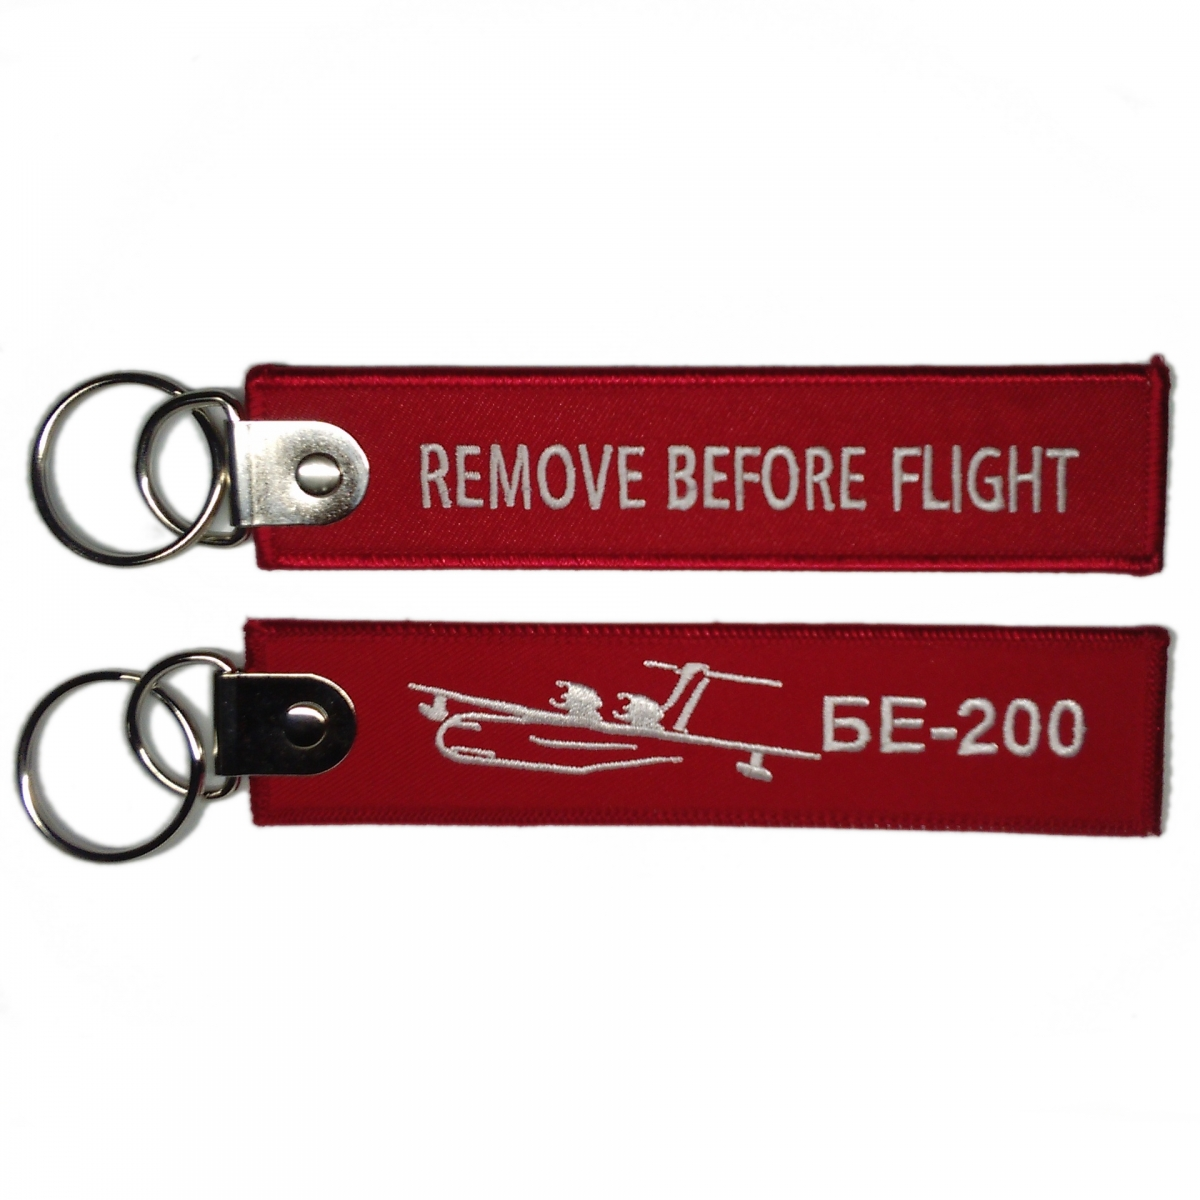 Брелок   Remove before flight -  БЕ-200